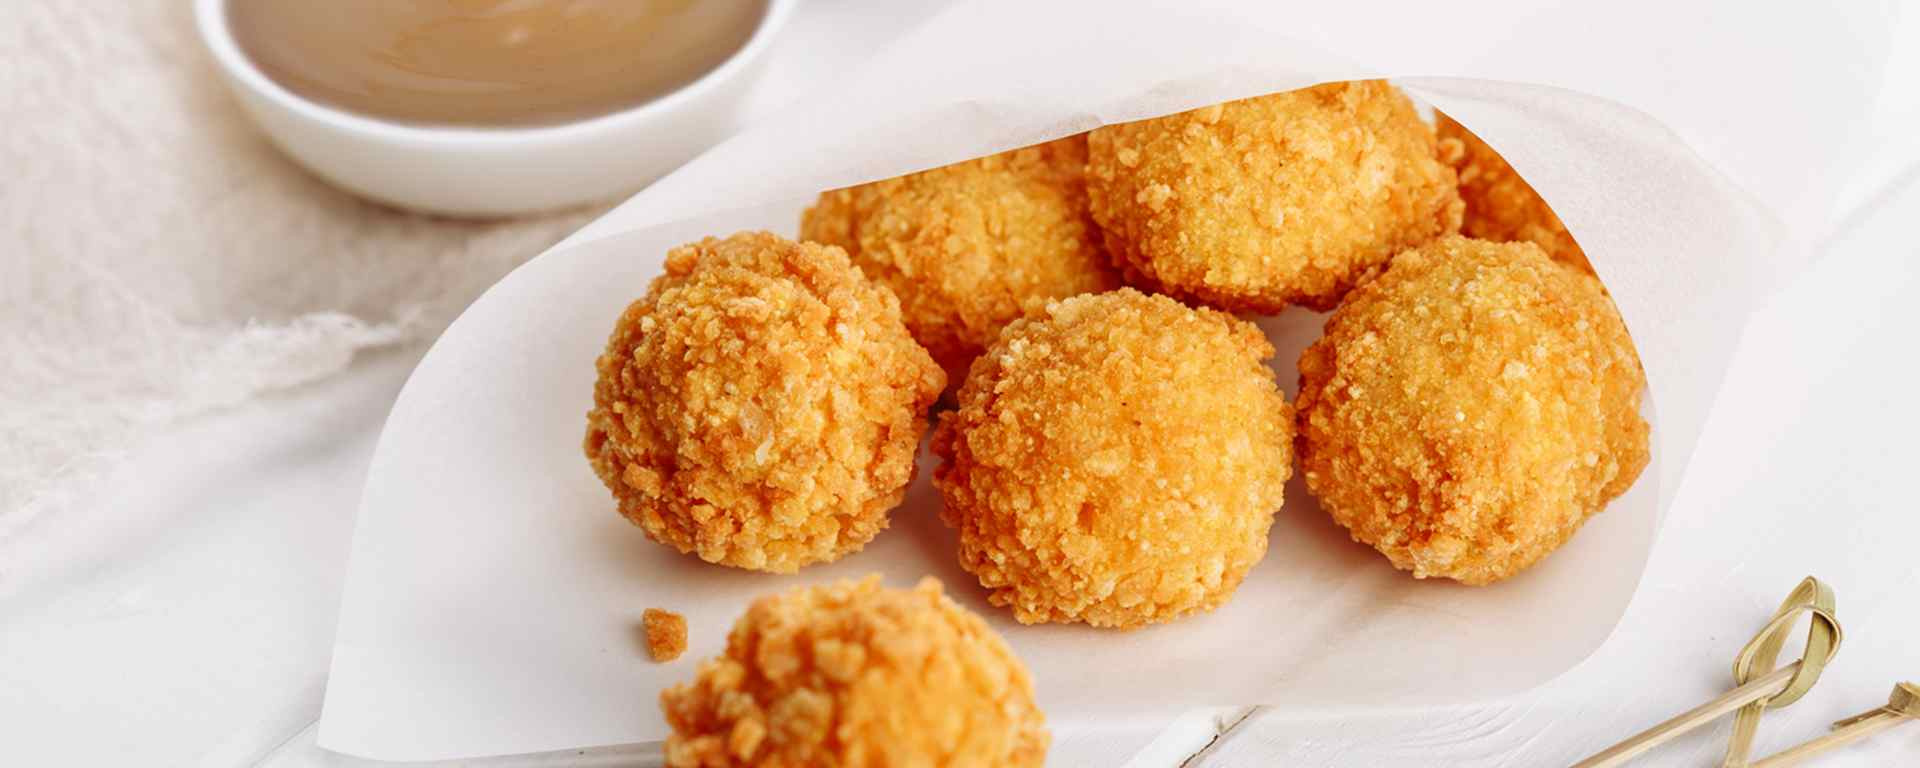 Photo for - Poutine Arancini with Ivanhoe Milled Cheddar Curds